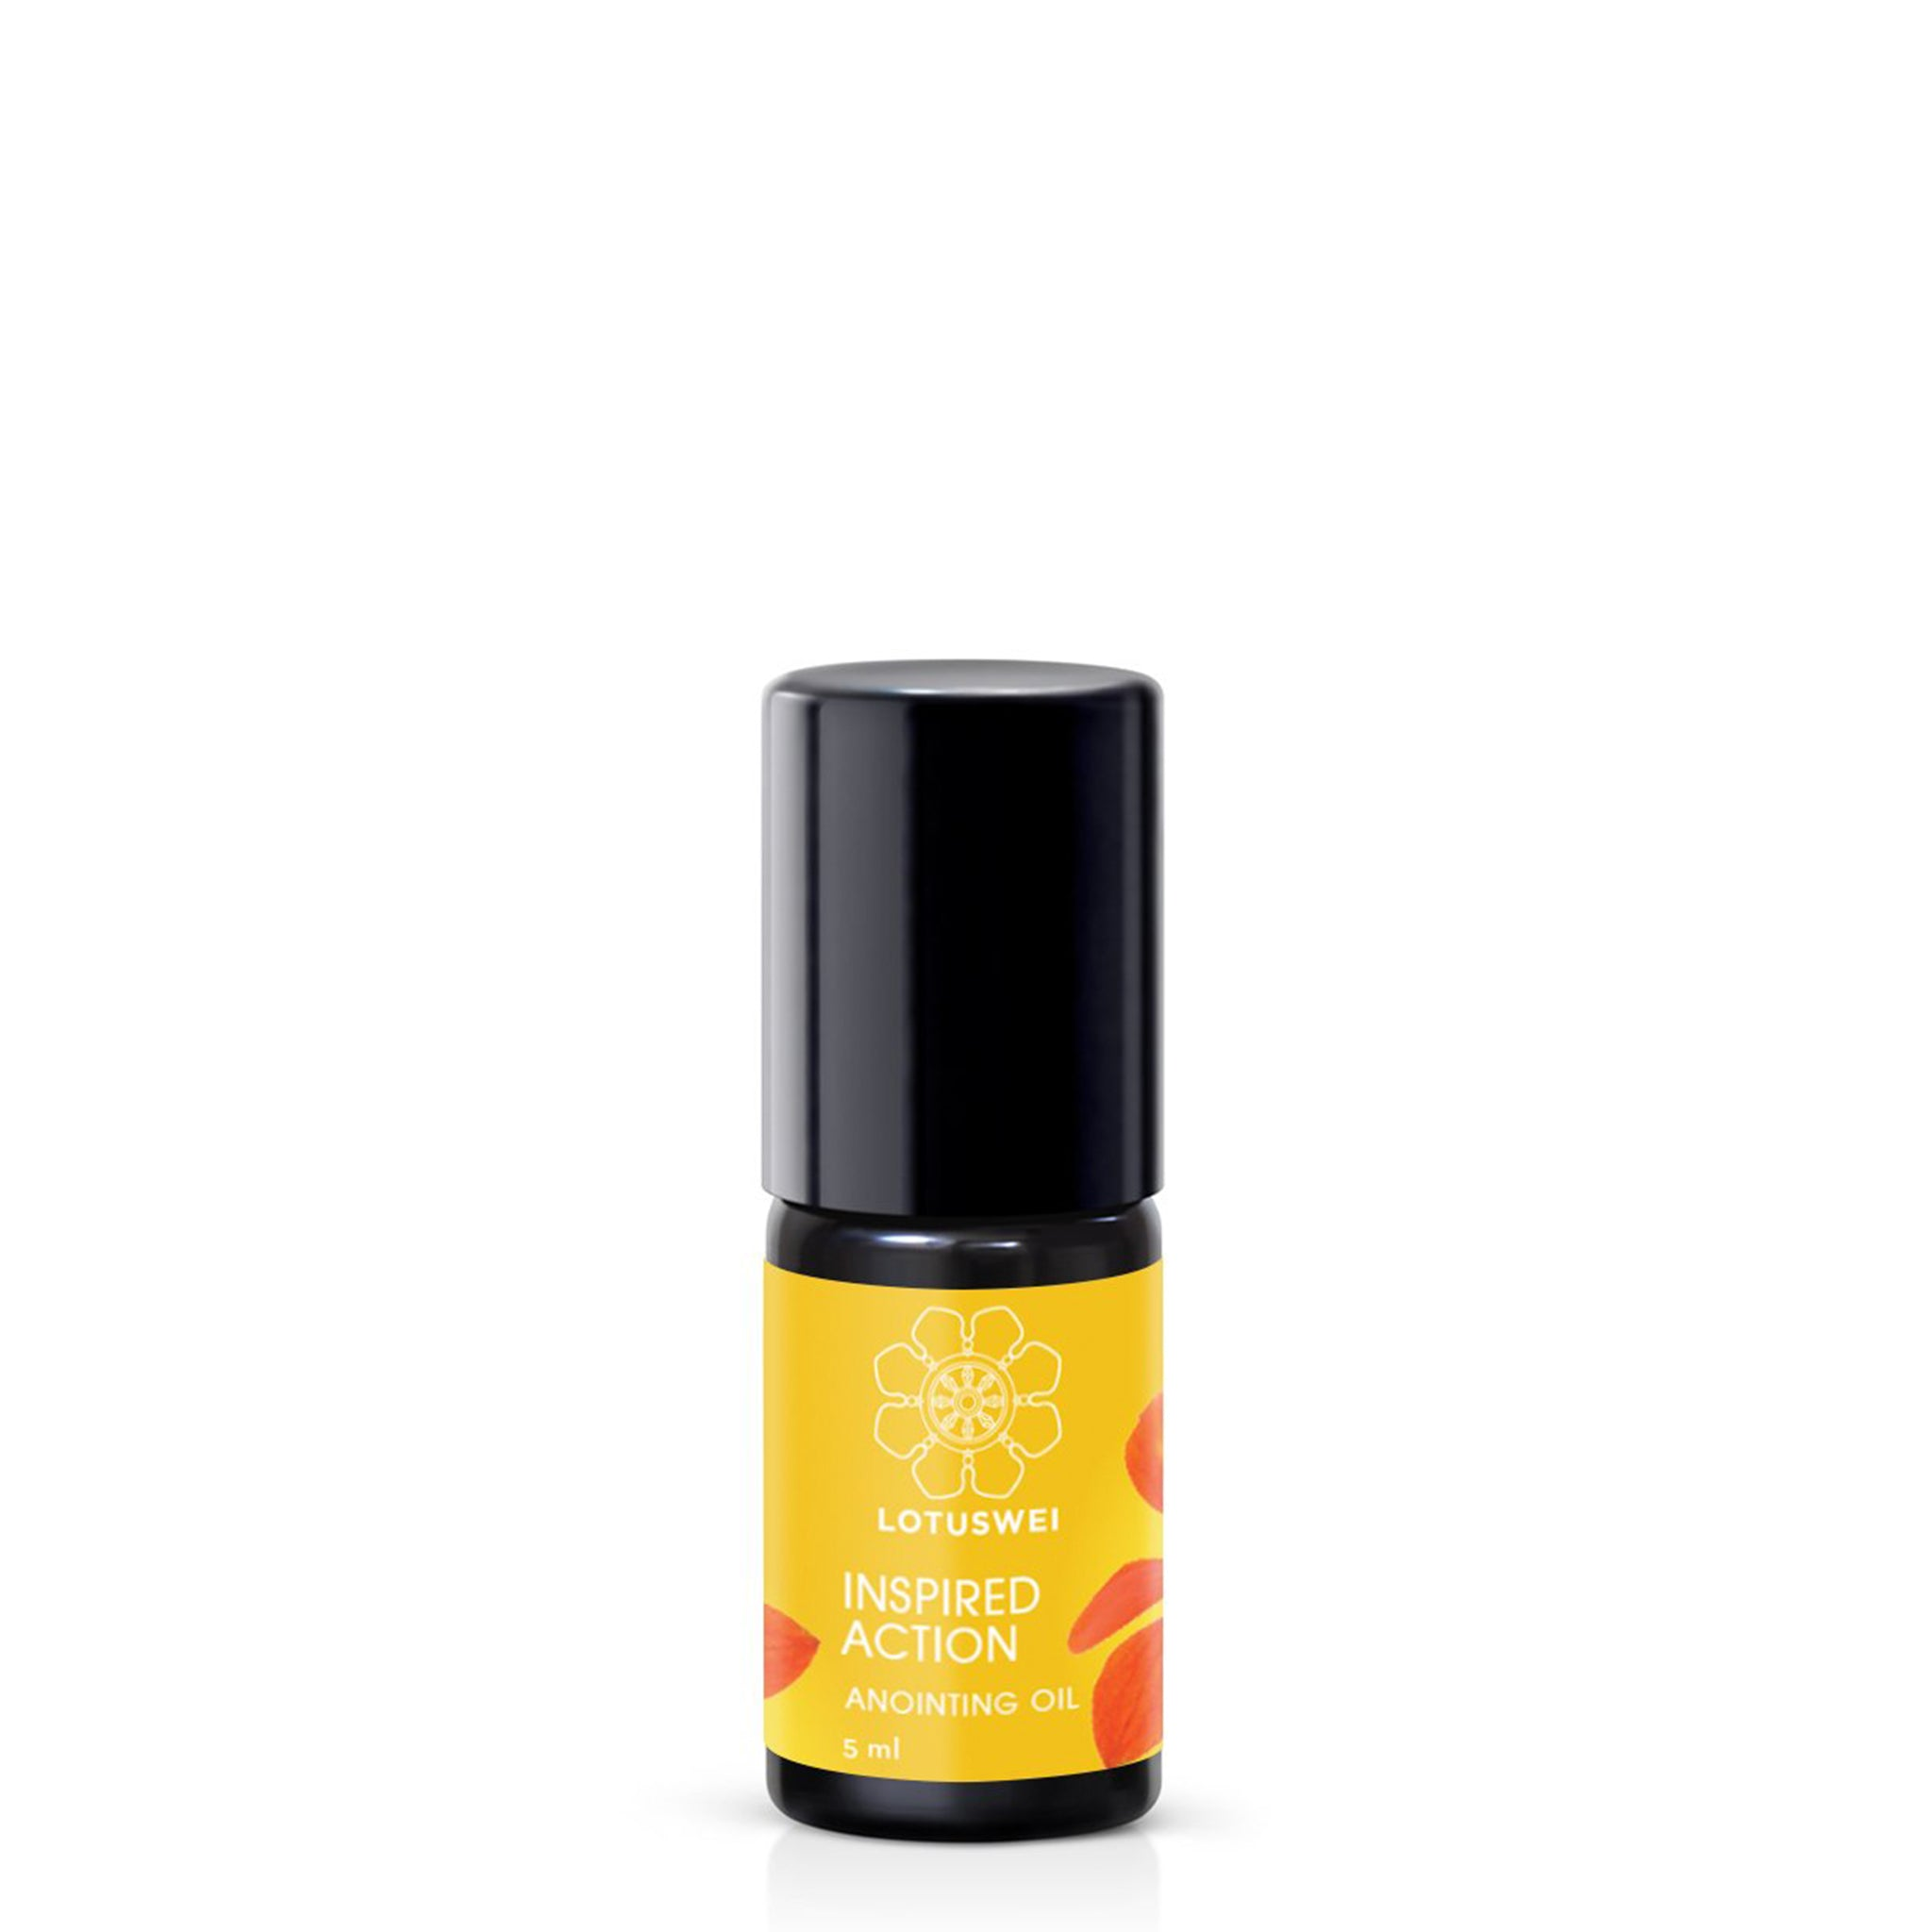 Lotus Wei Inspired Action Anointing Oil